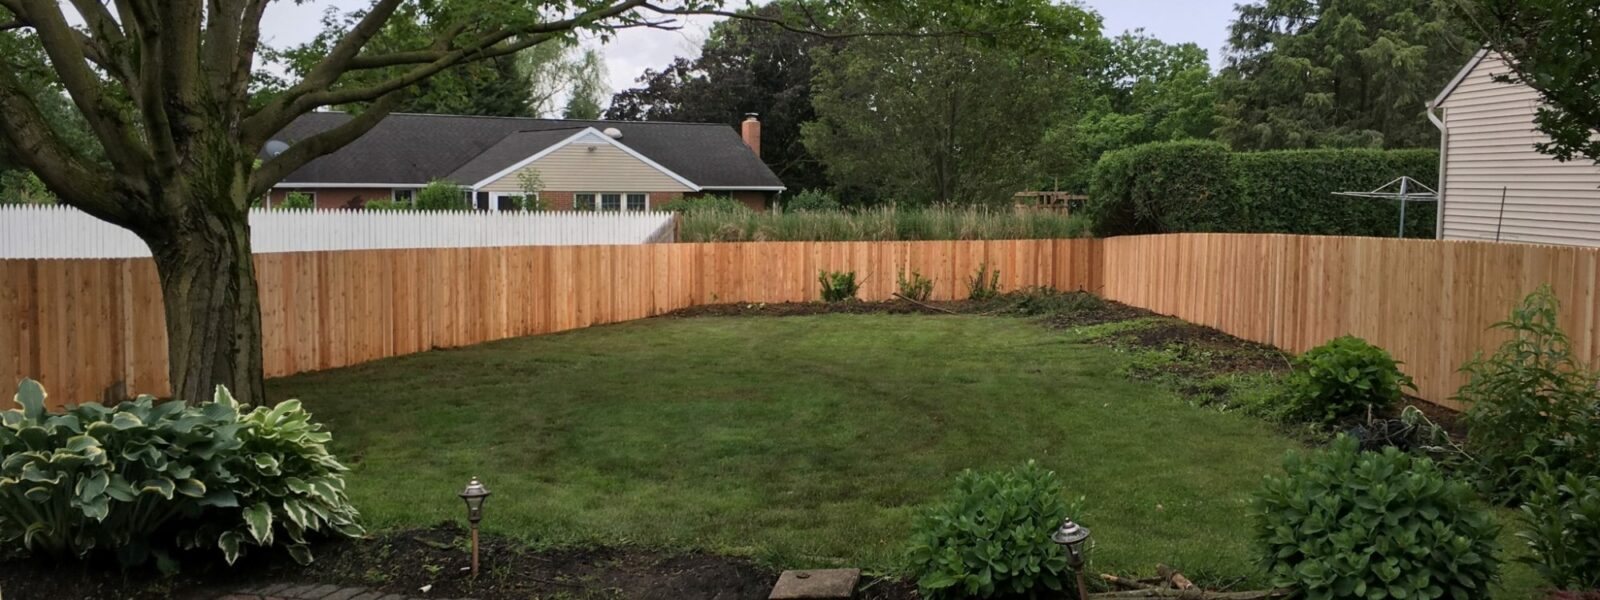 wood sounds abatement fence in yard